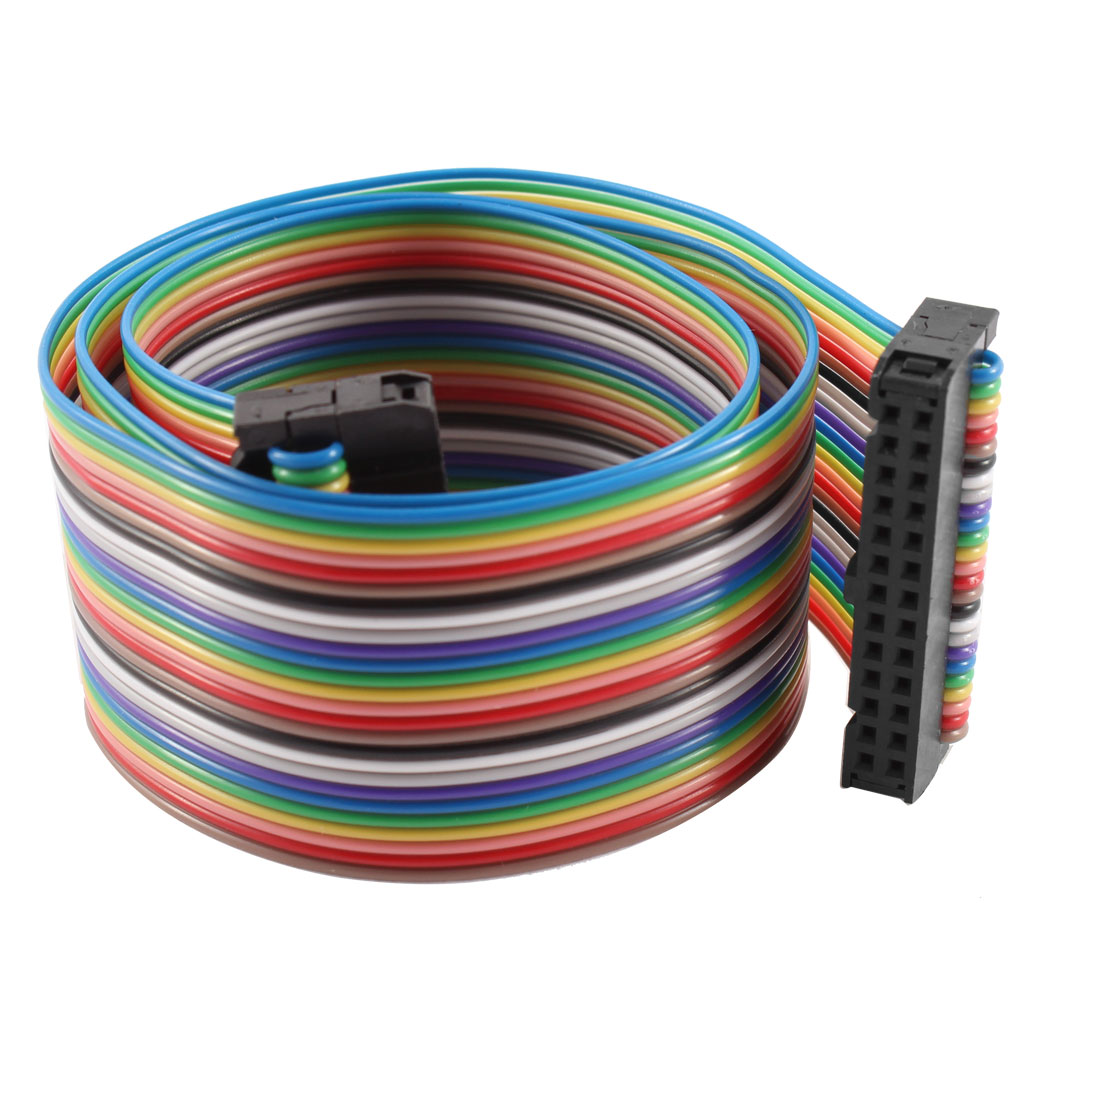 2.54mm Pitch 26 Pin 26 Way F/F Connector IDC Flat Rainbow Ribbon Cable 48cm